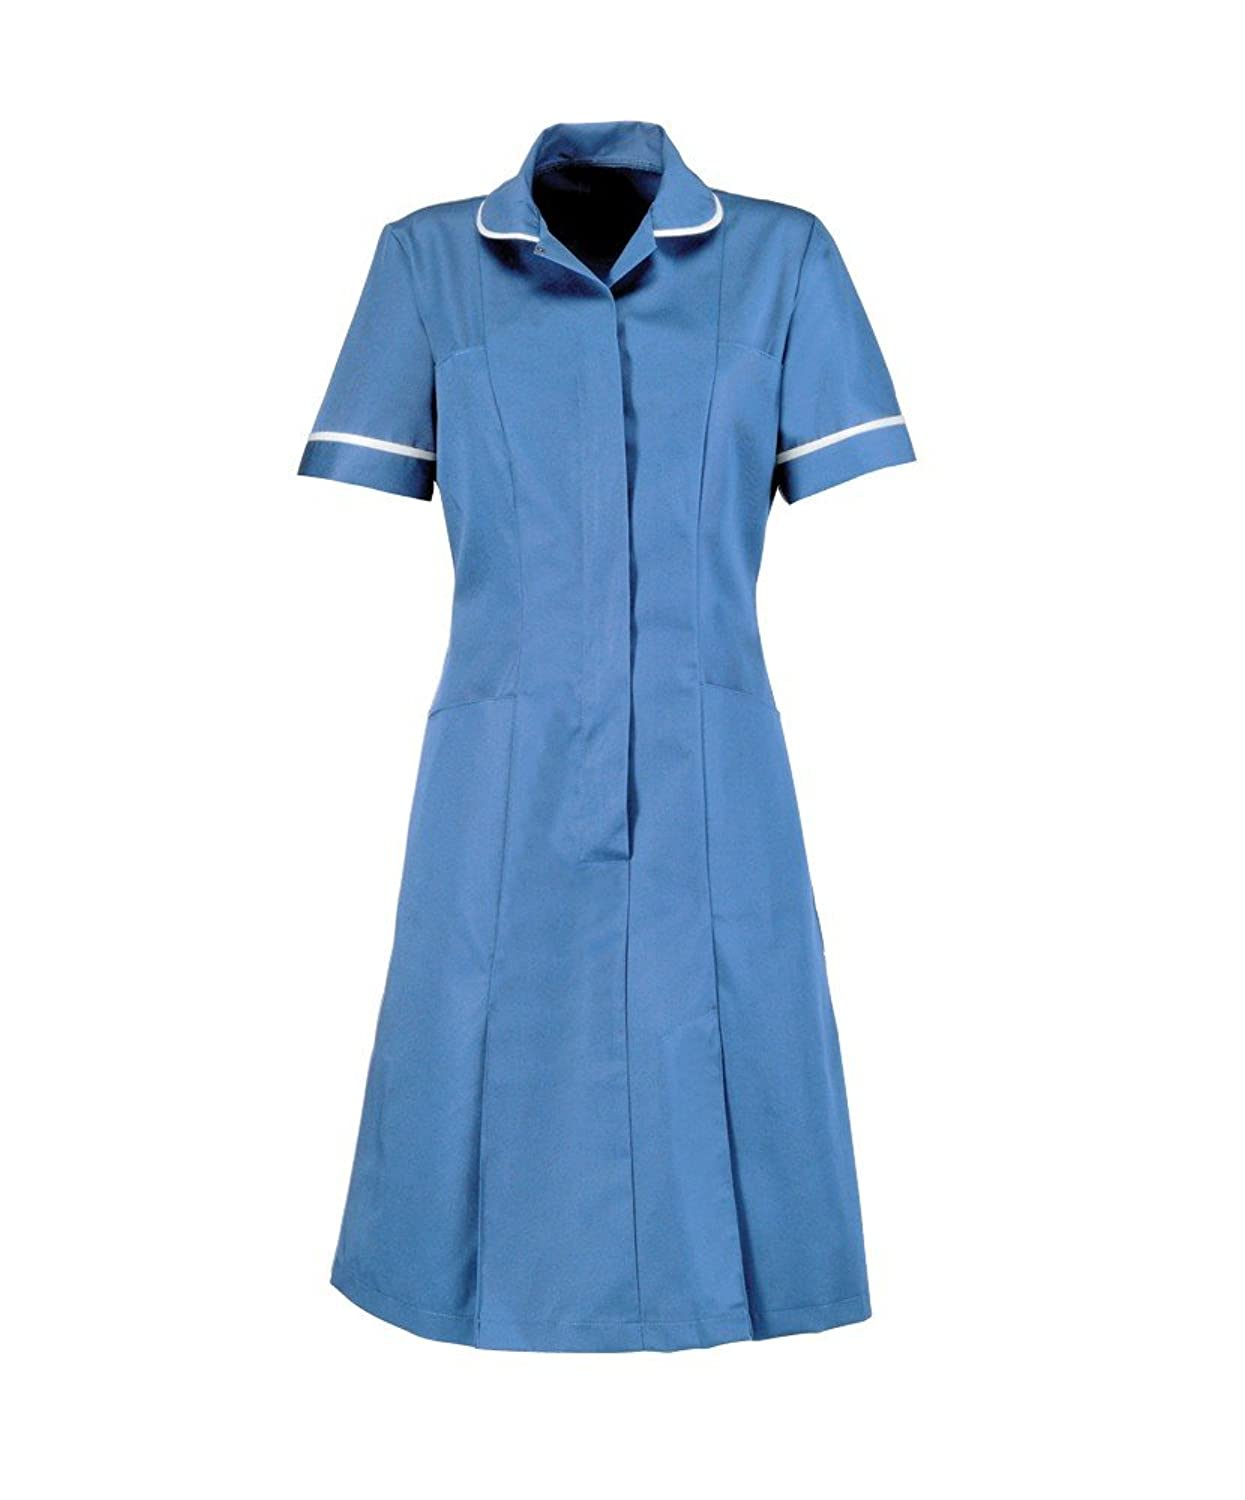 HP297R - Nurses Dress (Several Colour Choices) (104cm (Dress Size 18), Hospital Blue Piped White)